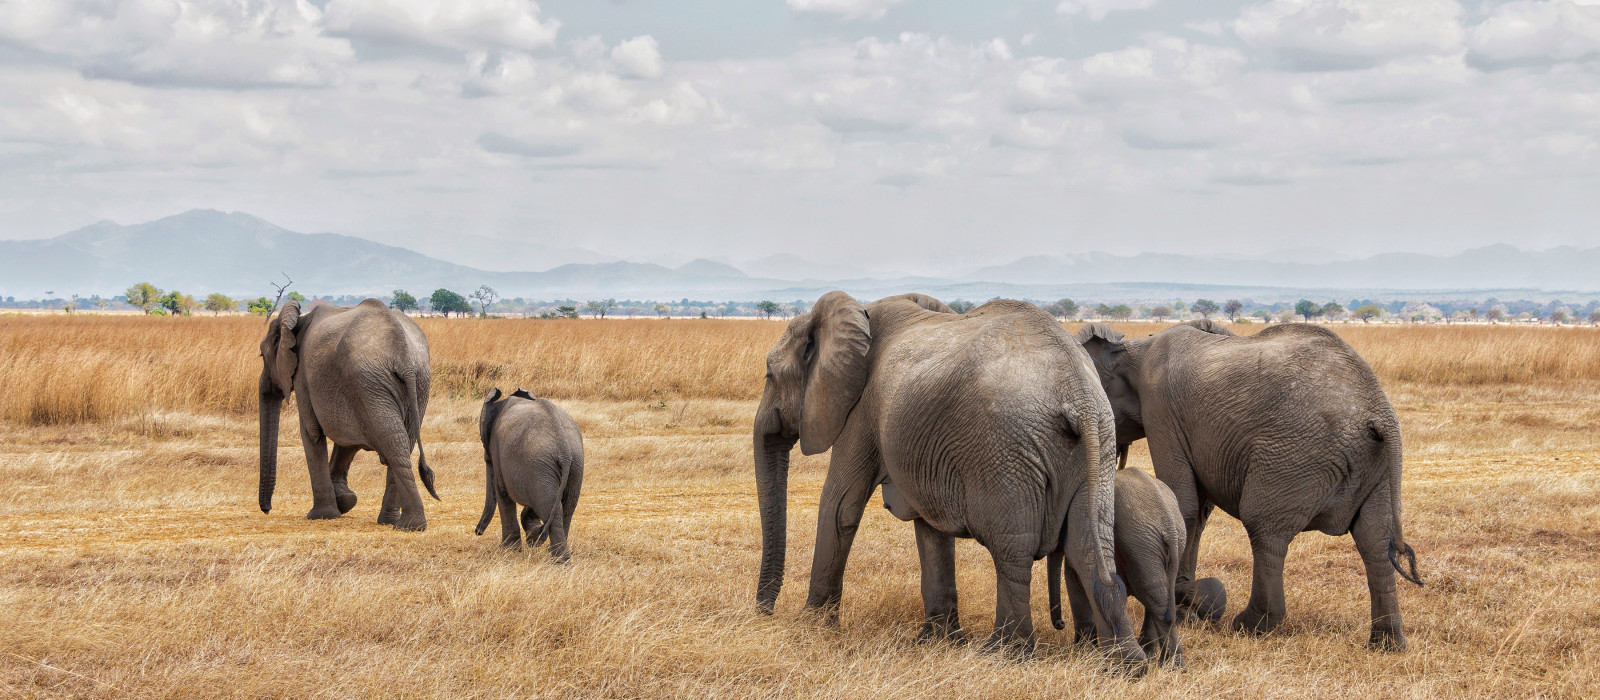 Elephants walking in a row in Mikumi National park, Tanzania, Africa - best luxury vacation spots in the world